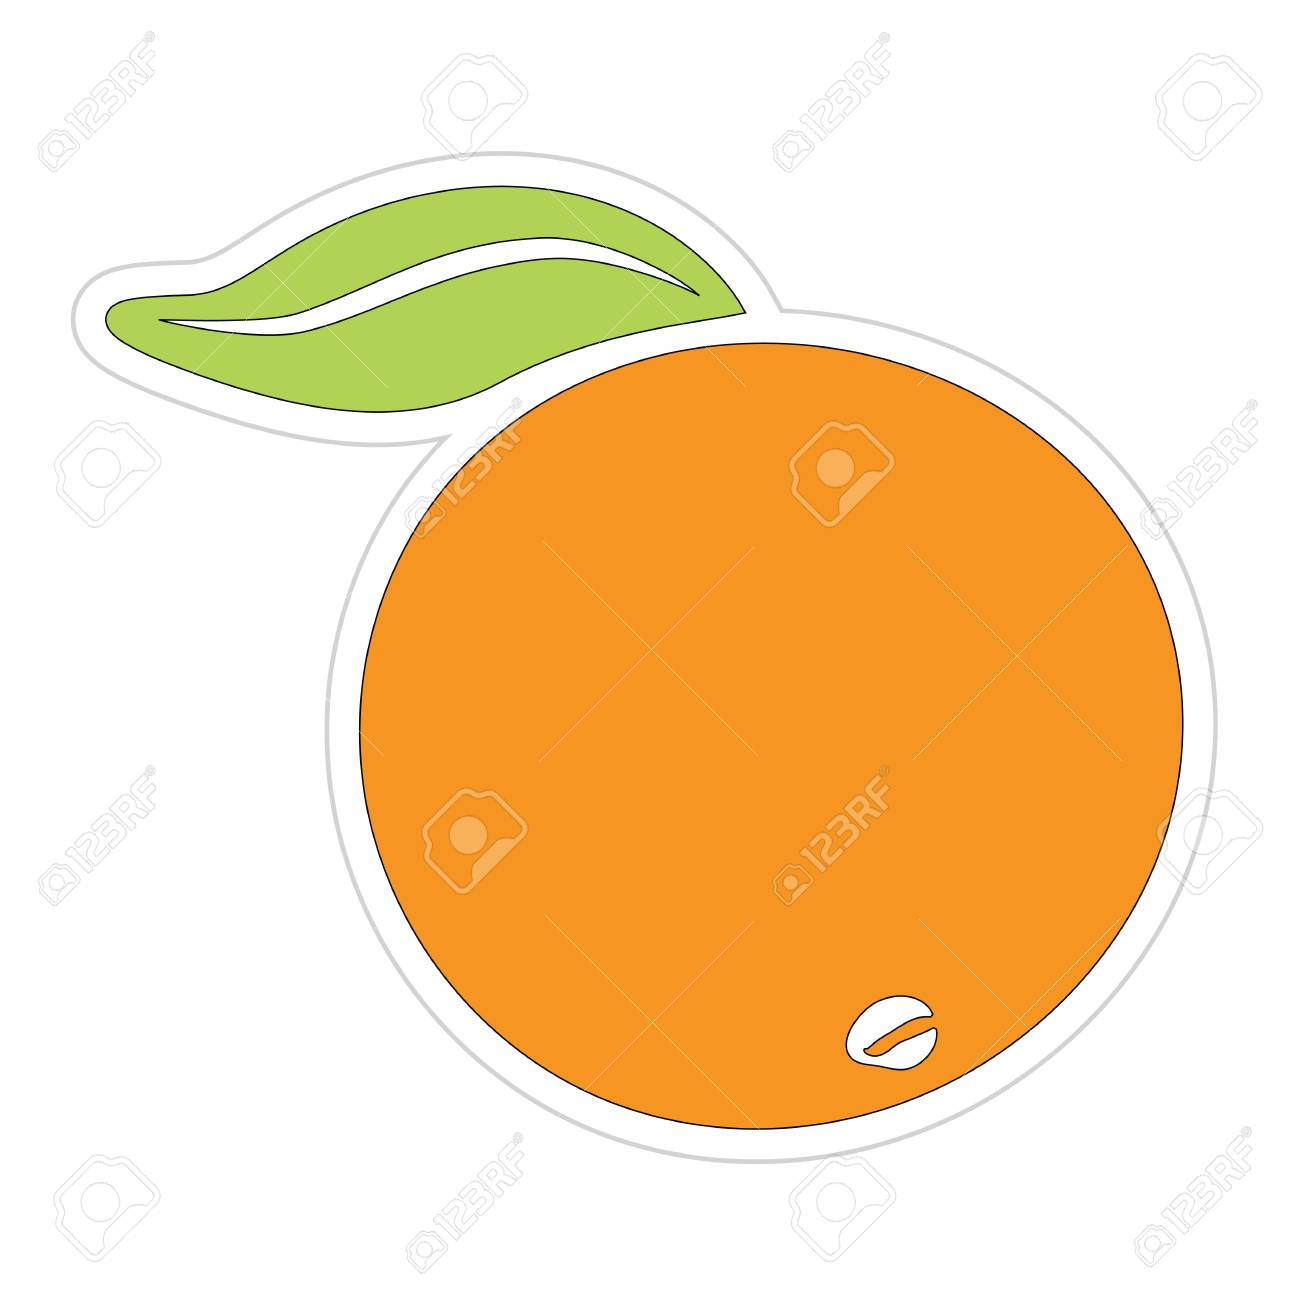 Cartoon Orange Sticker Stock Vector - 18543632